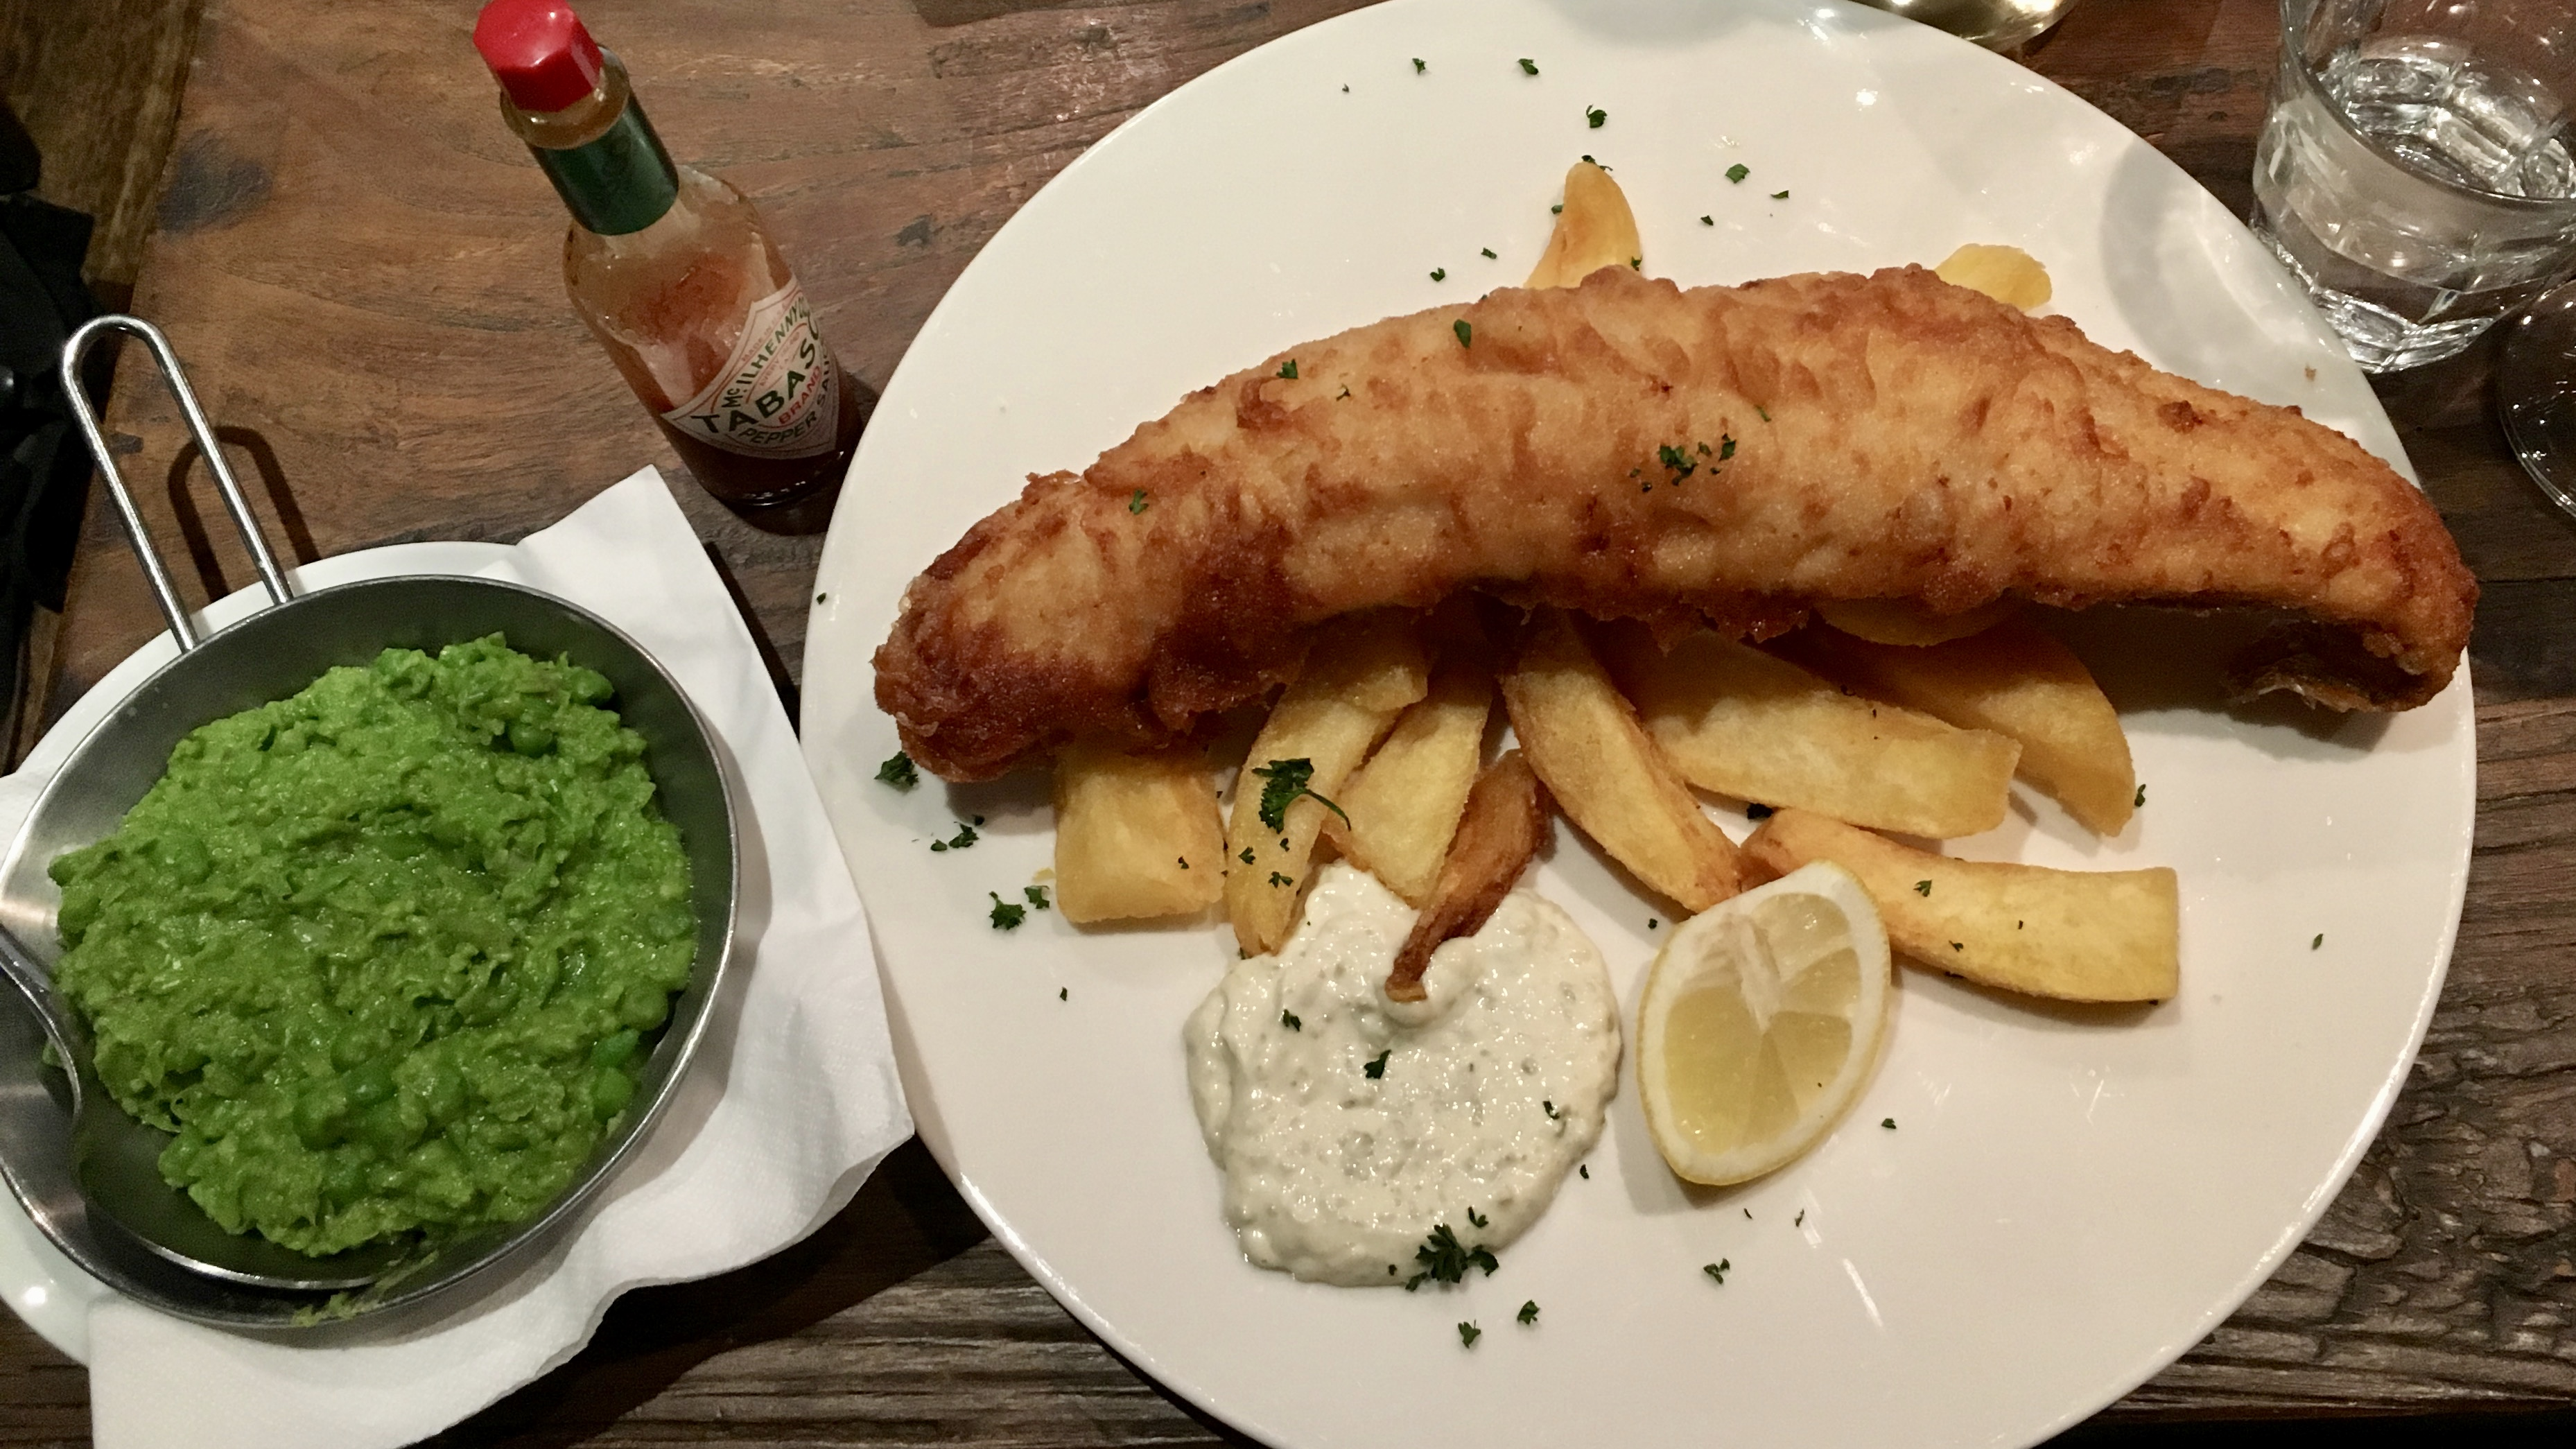 A London Fish and Chips Story: Sometimes, You Can't Go Back, But You Can Go Forward